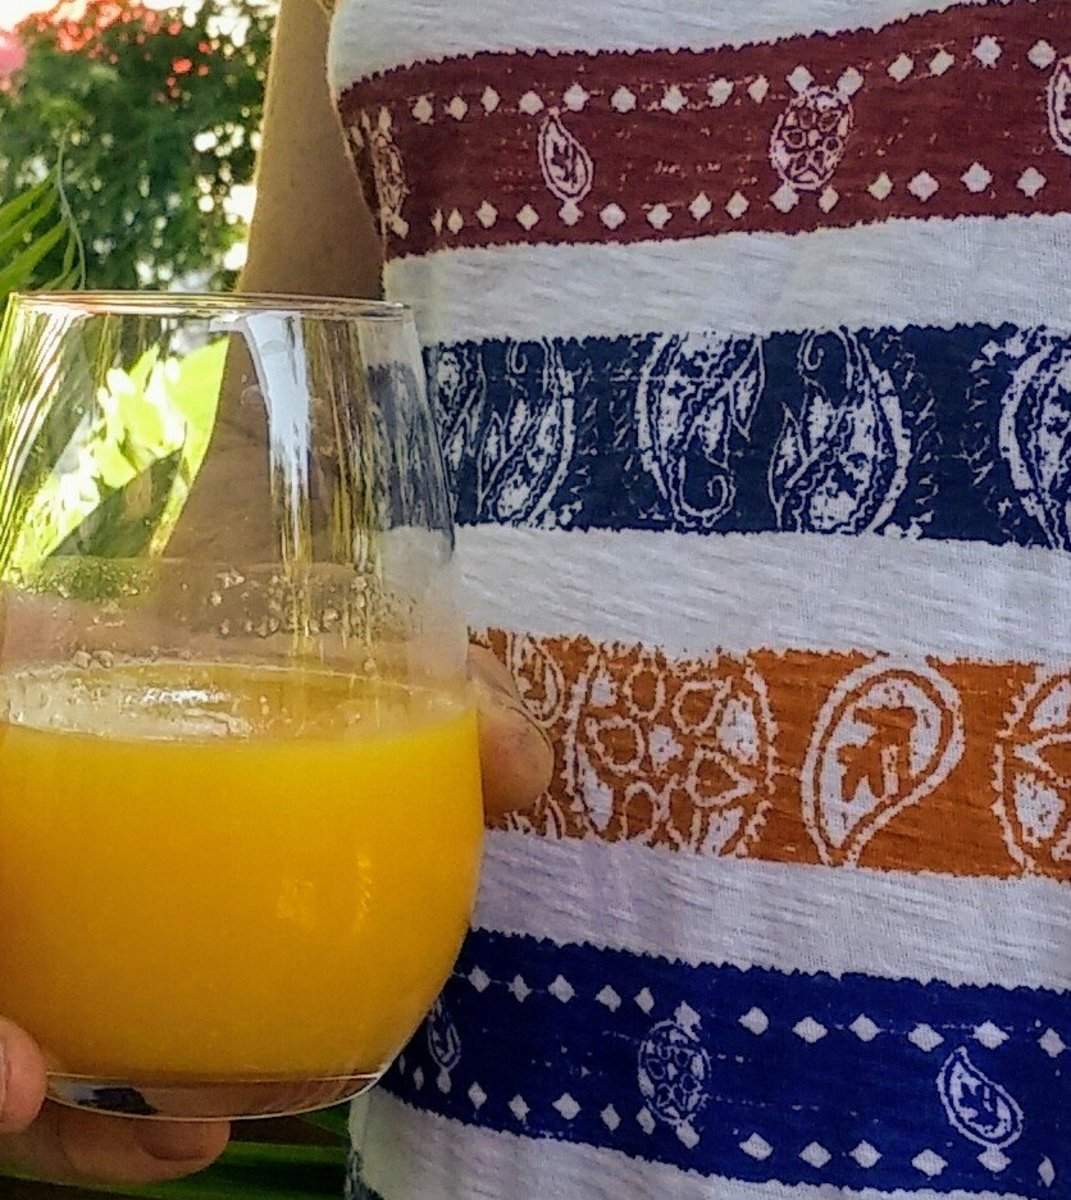 What's Really in Your Orange Juice?